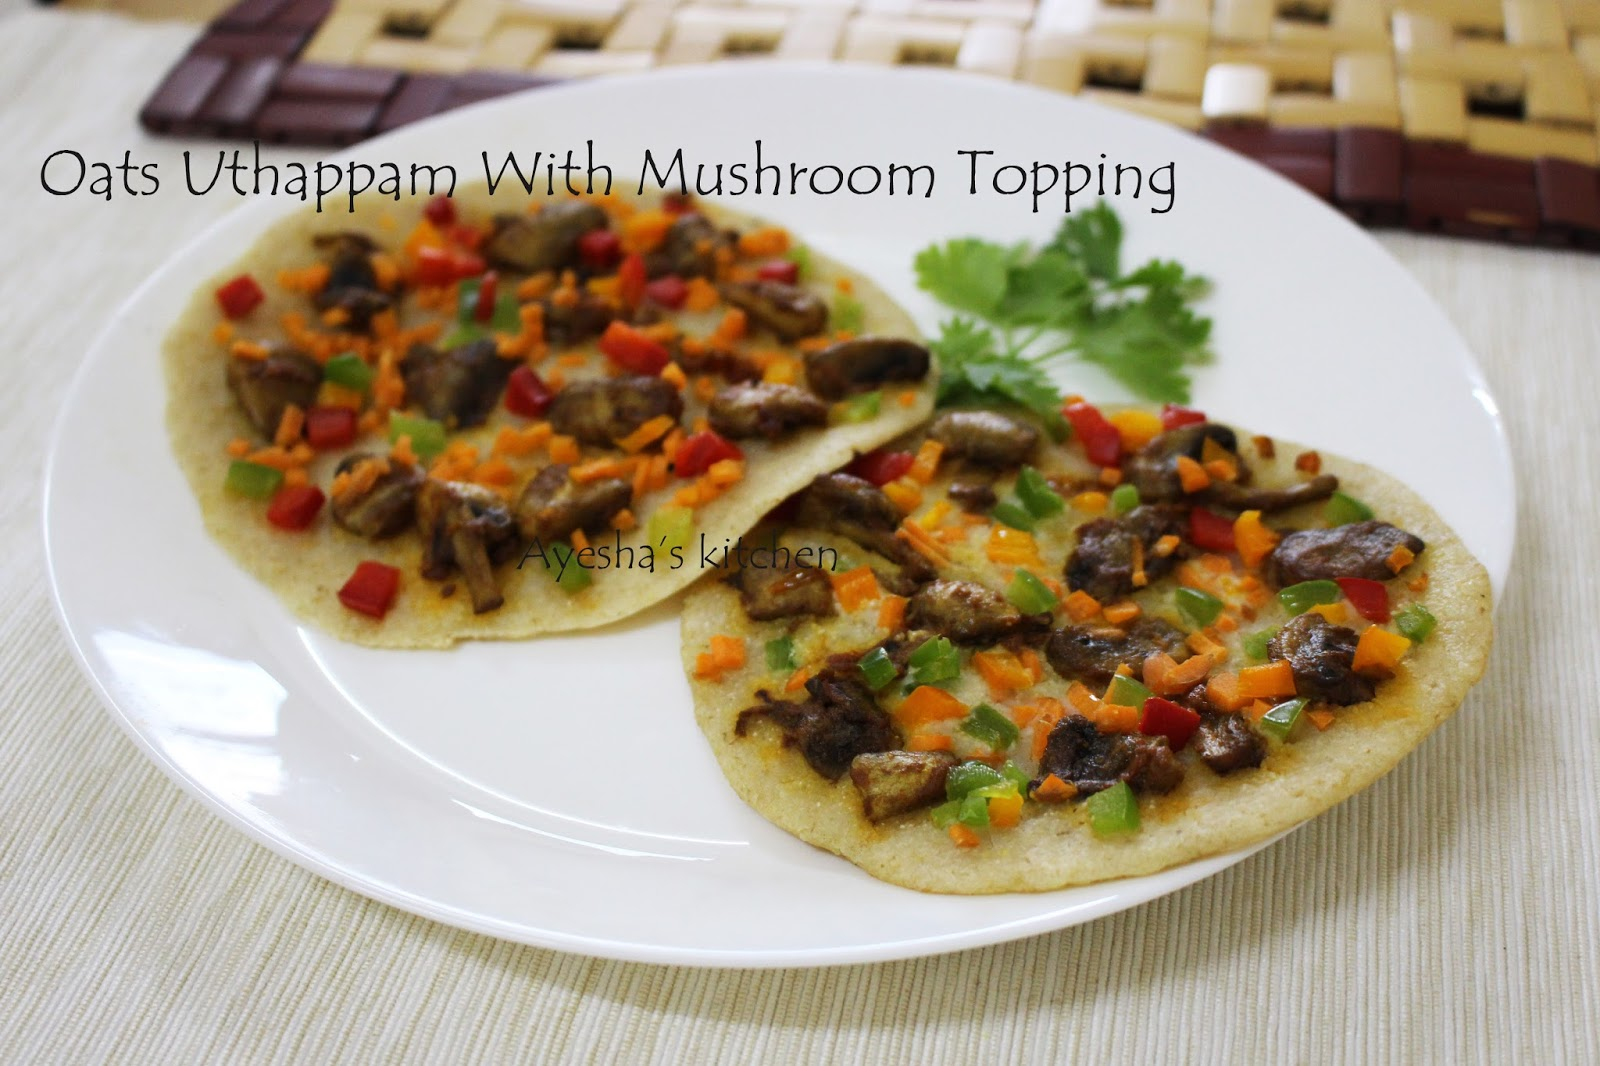 Oats uthappam with mushroom topping recipe instant oats uthappam so lets see how to make oats uthappam with mushroom topping enjoy this delicious breakfast recipe with oats the recipe courtesy vahchef forumfinder Images